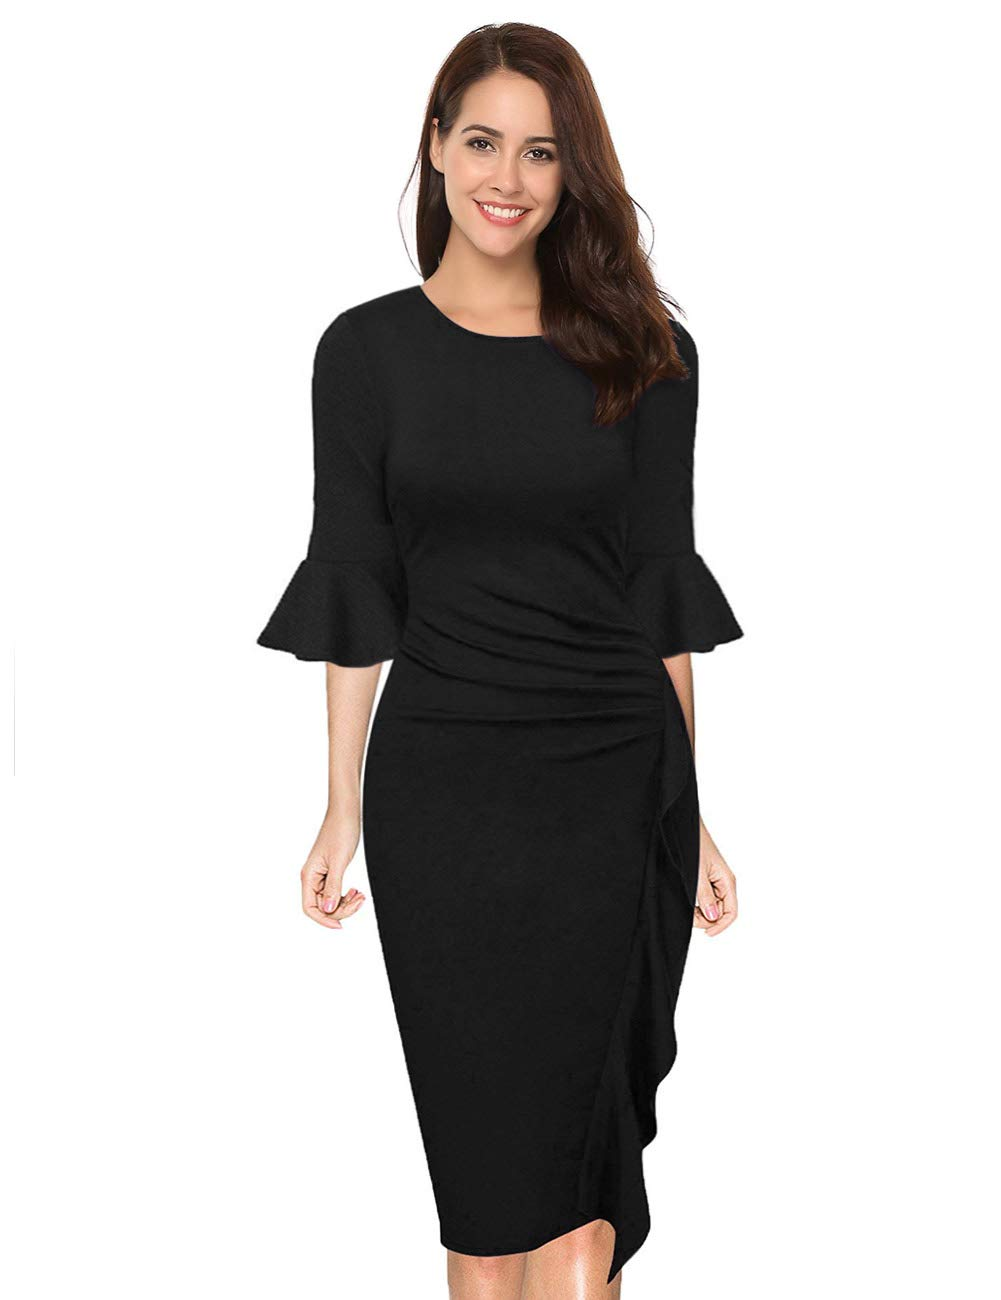 HiQueen Women's Retro Ruffles Wrap Ruched Slim Work Business Cocktail Bodycon Dress